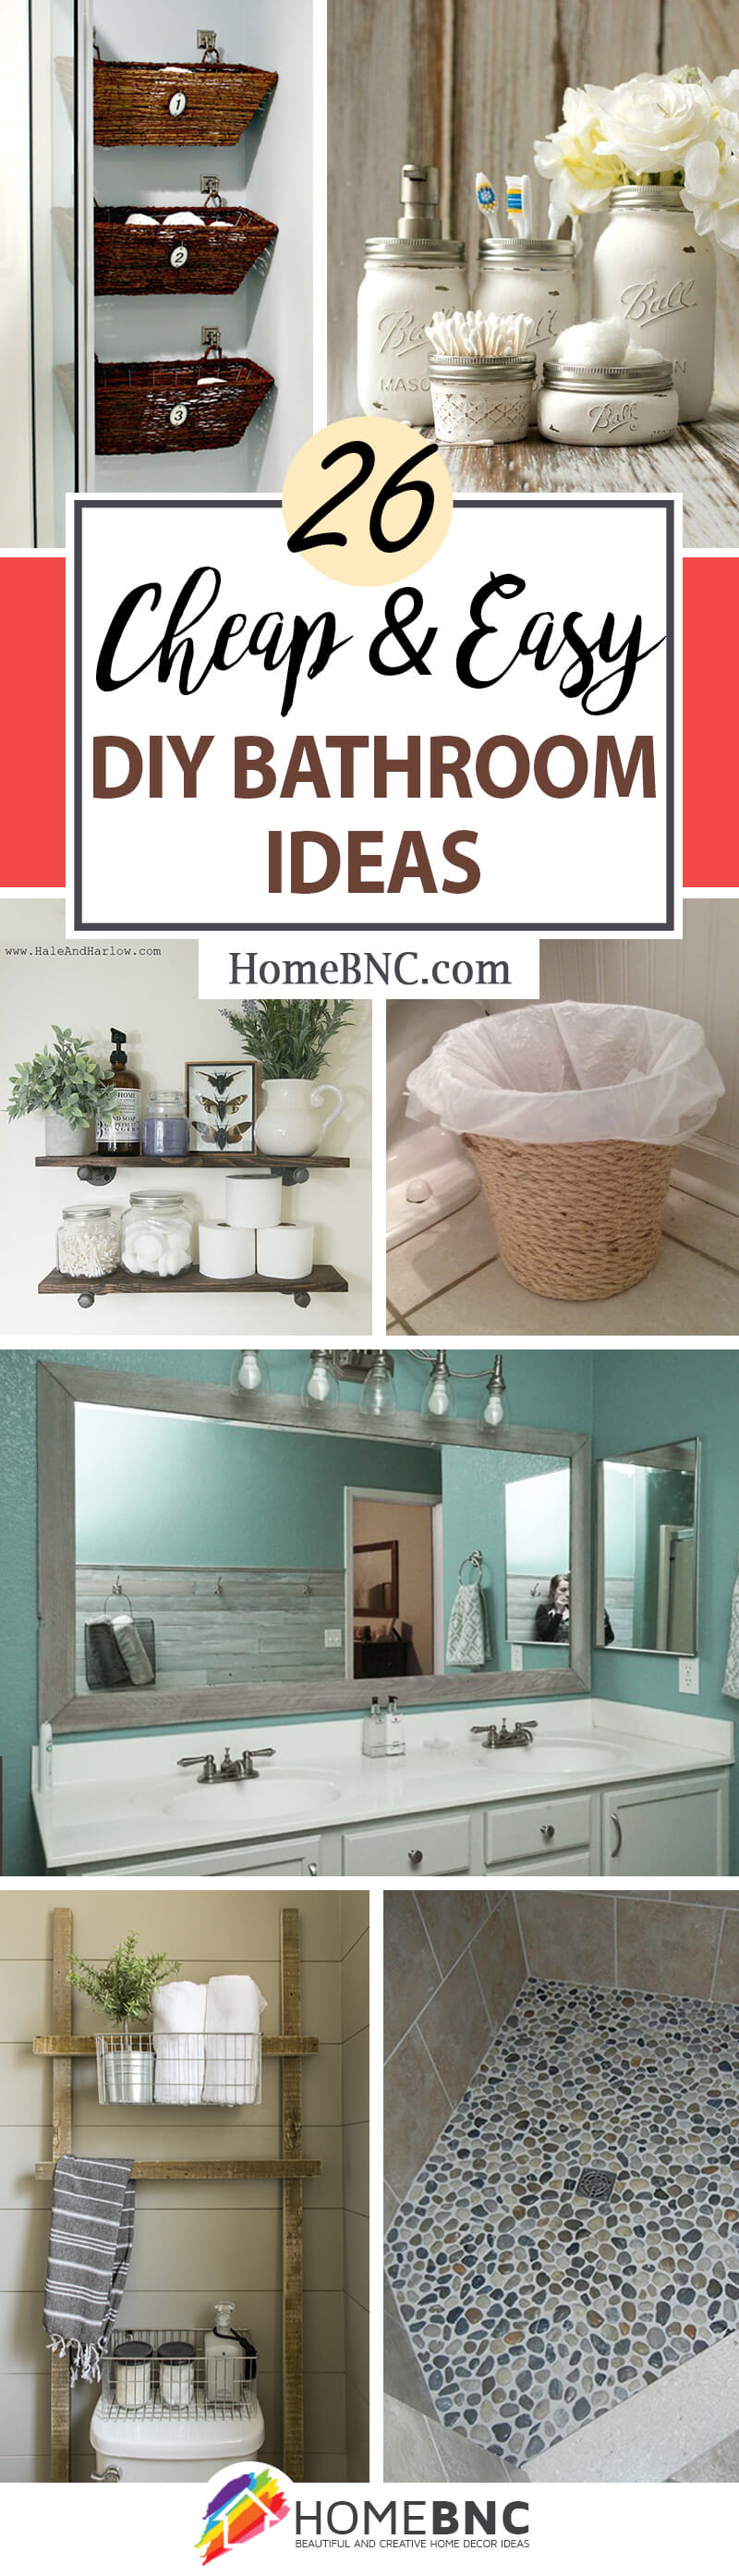 Easy Diy Bathroom Ideas